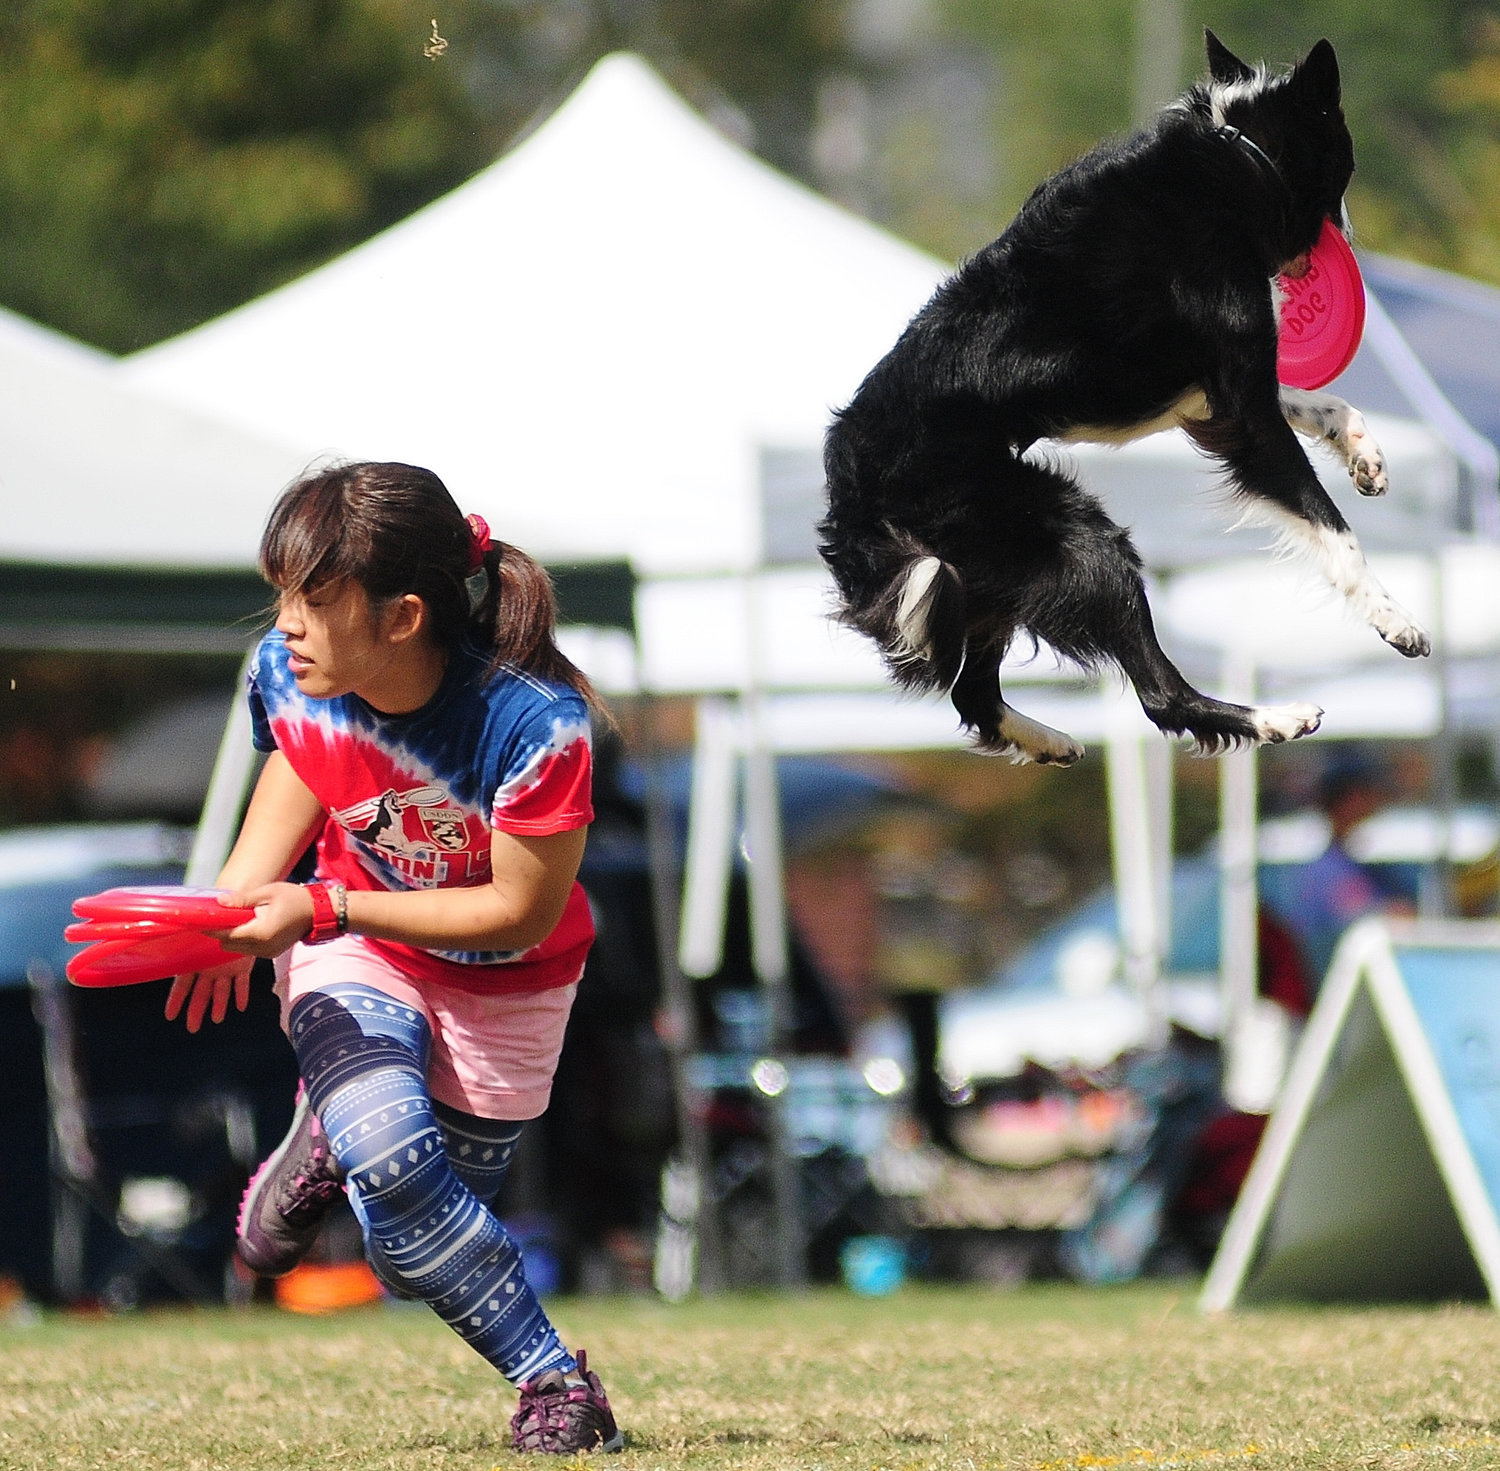 A canine competitor leaps in the air last year at the United States Disc Dog Nationals World Finals in Cartersville.